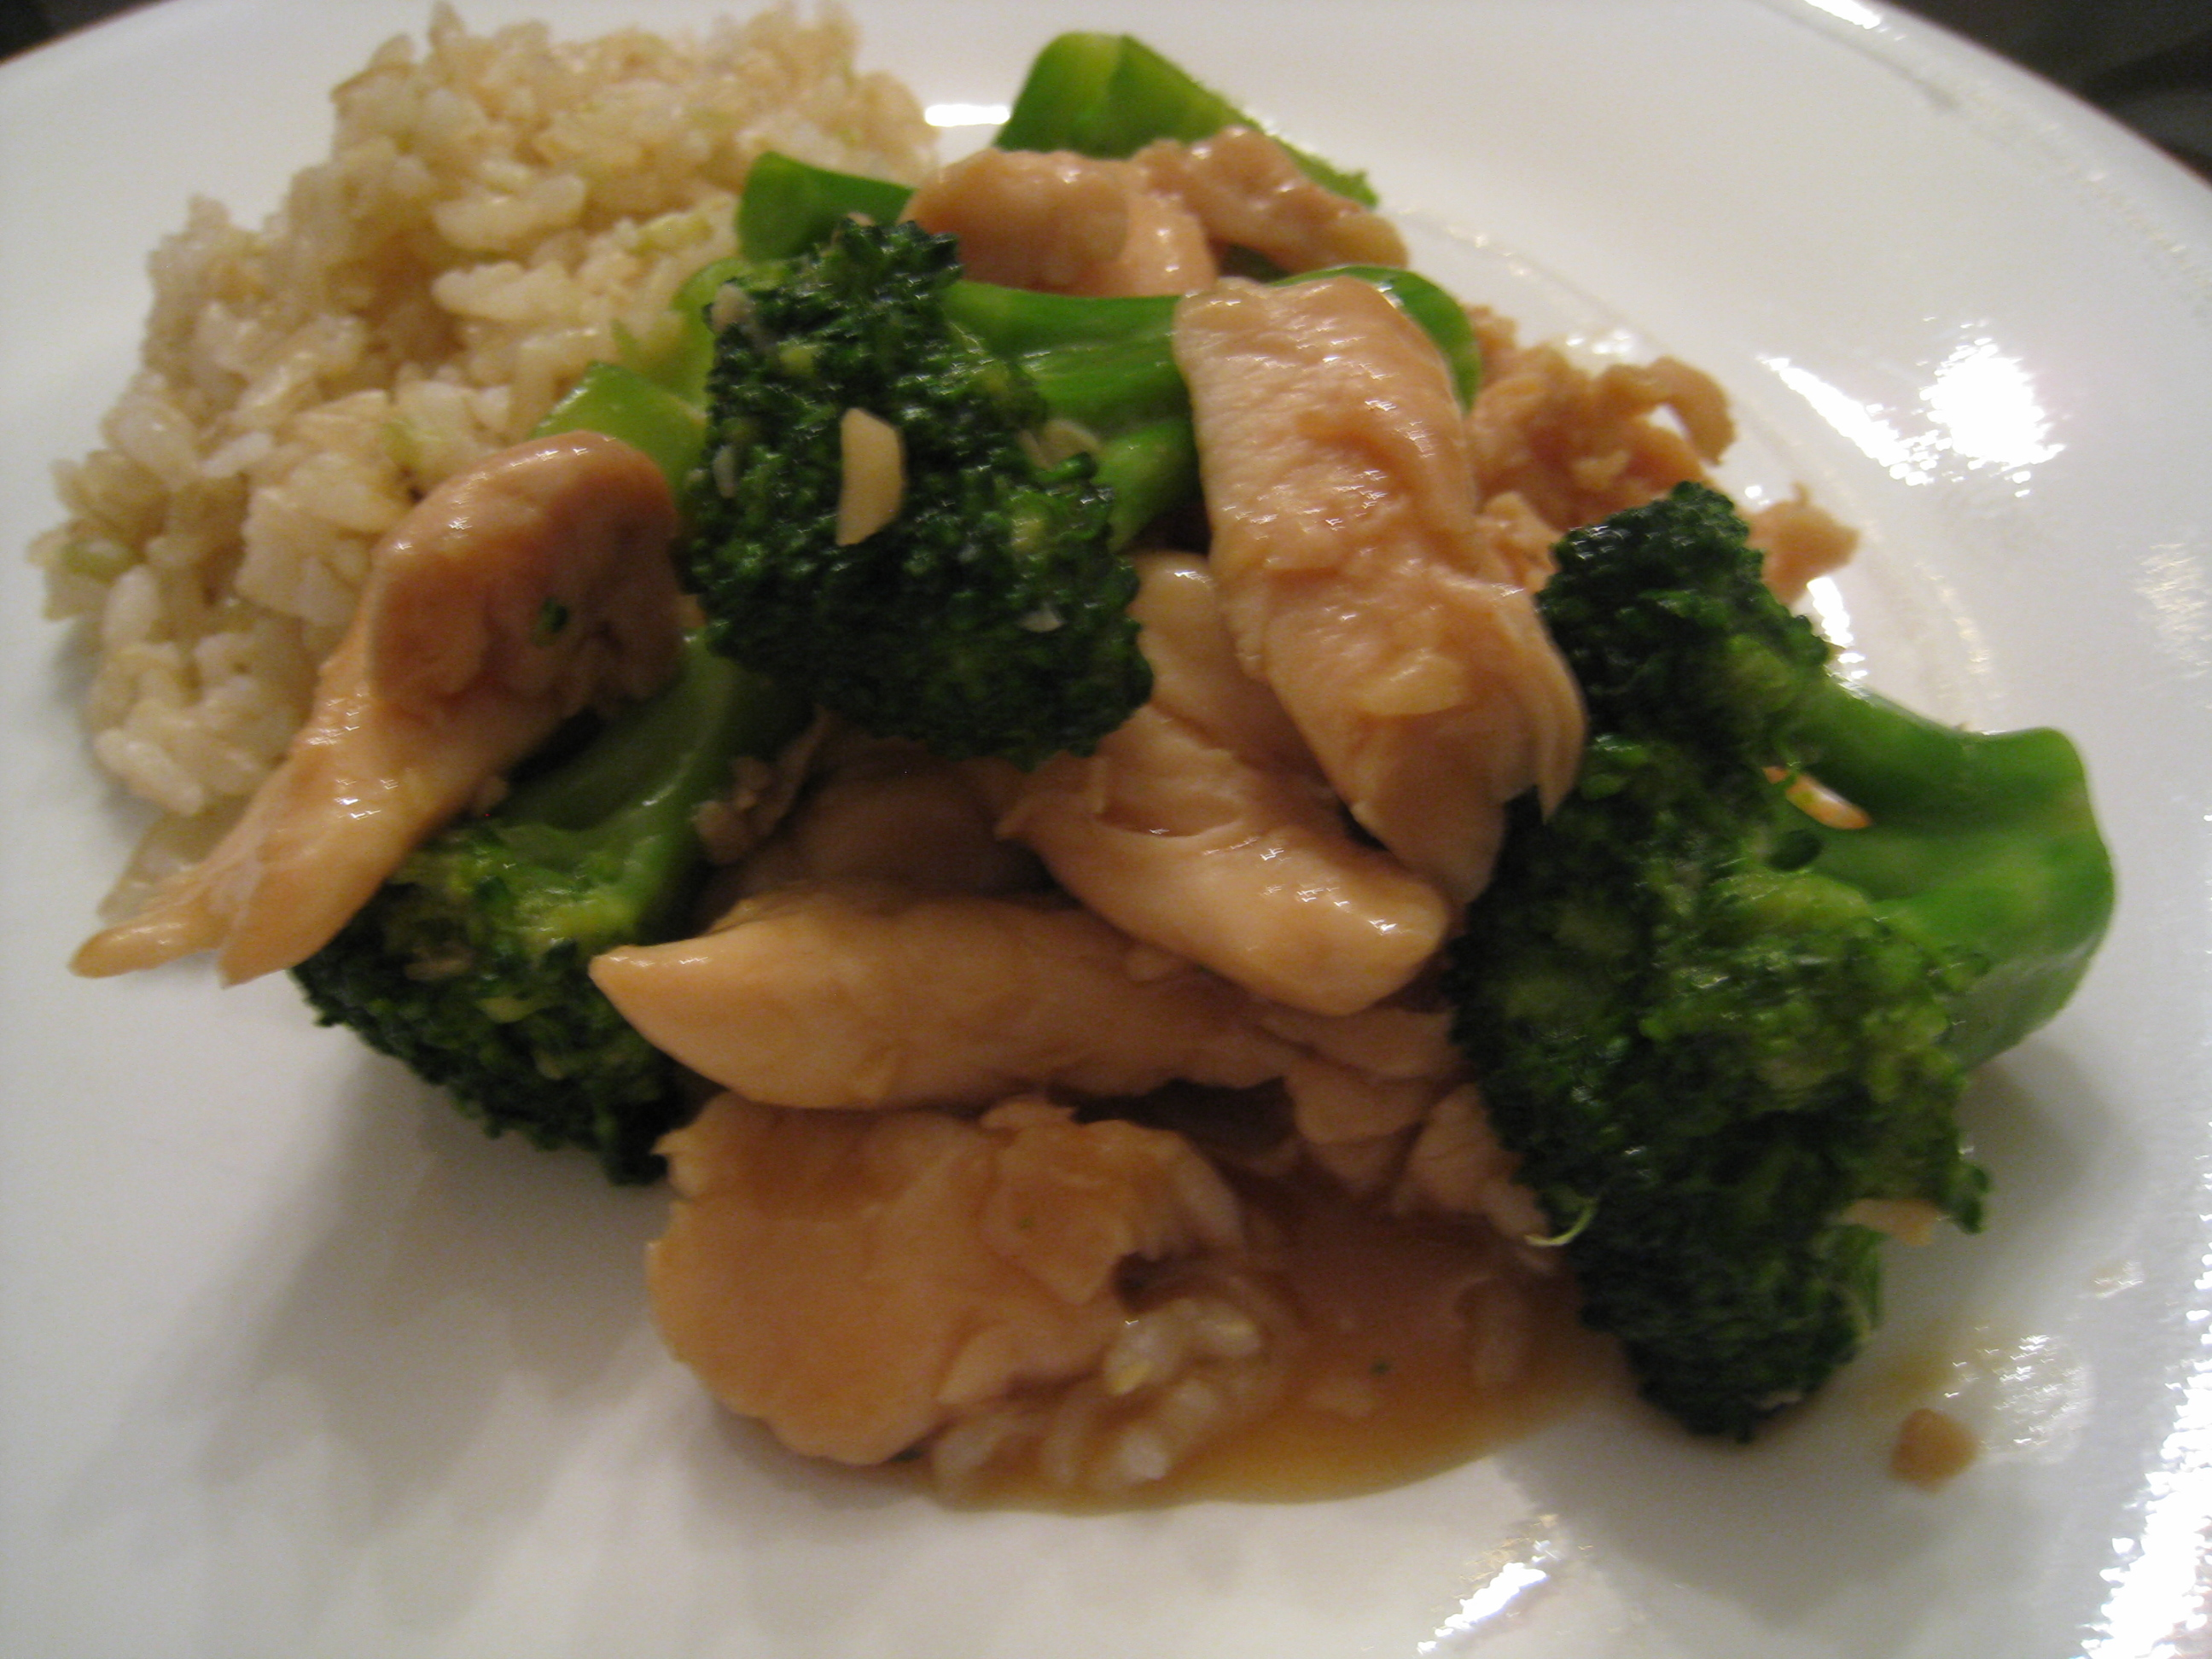 Chinese chicken and broccoli chinese chicken recipes for busy people broccoli then sauce chicken forumfinder Images